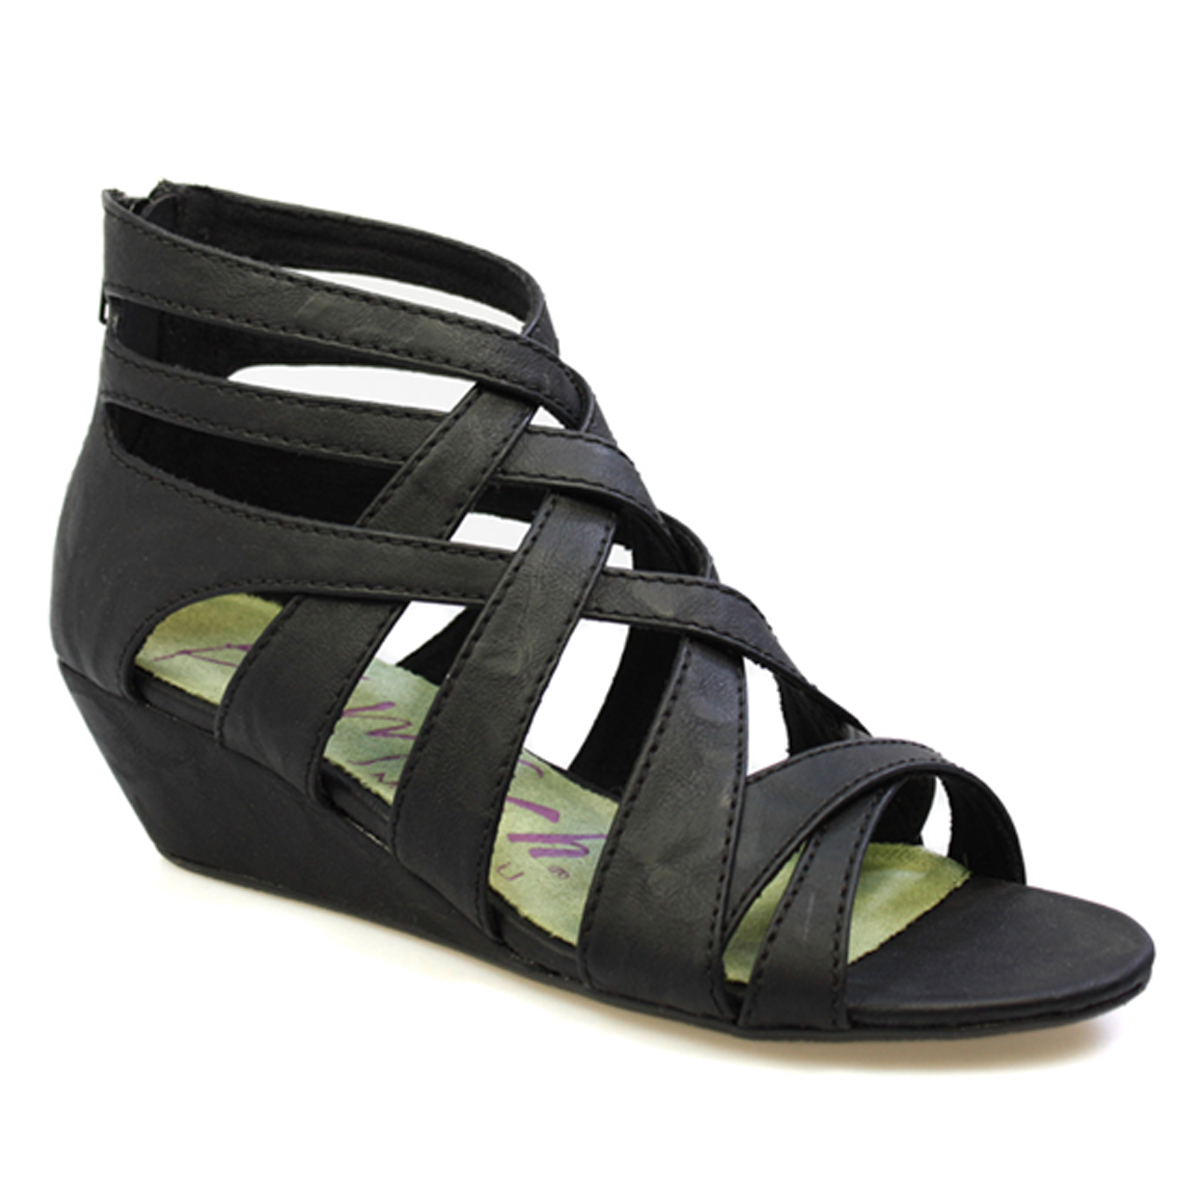 Free shipping and returns on all heels for women at skachat-clas.cf Find a great selection of women's shoes with medium, high and ultra-high heels from top brands including Christian Louboutin, Badgley Mischka, Steve Madden and more.